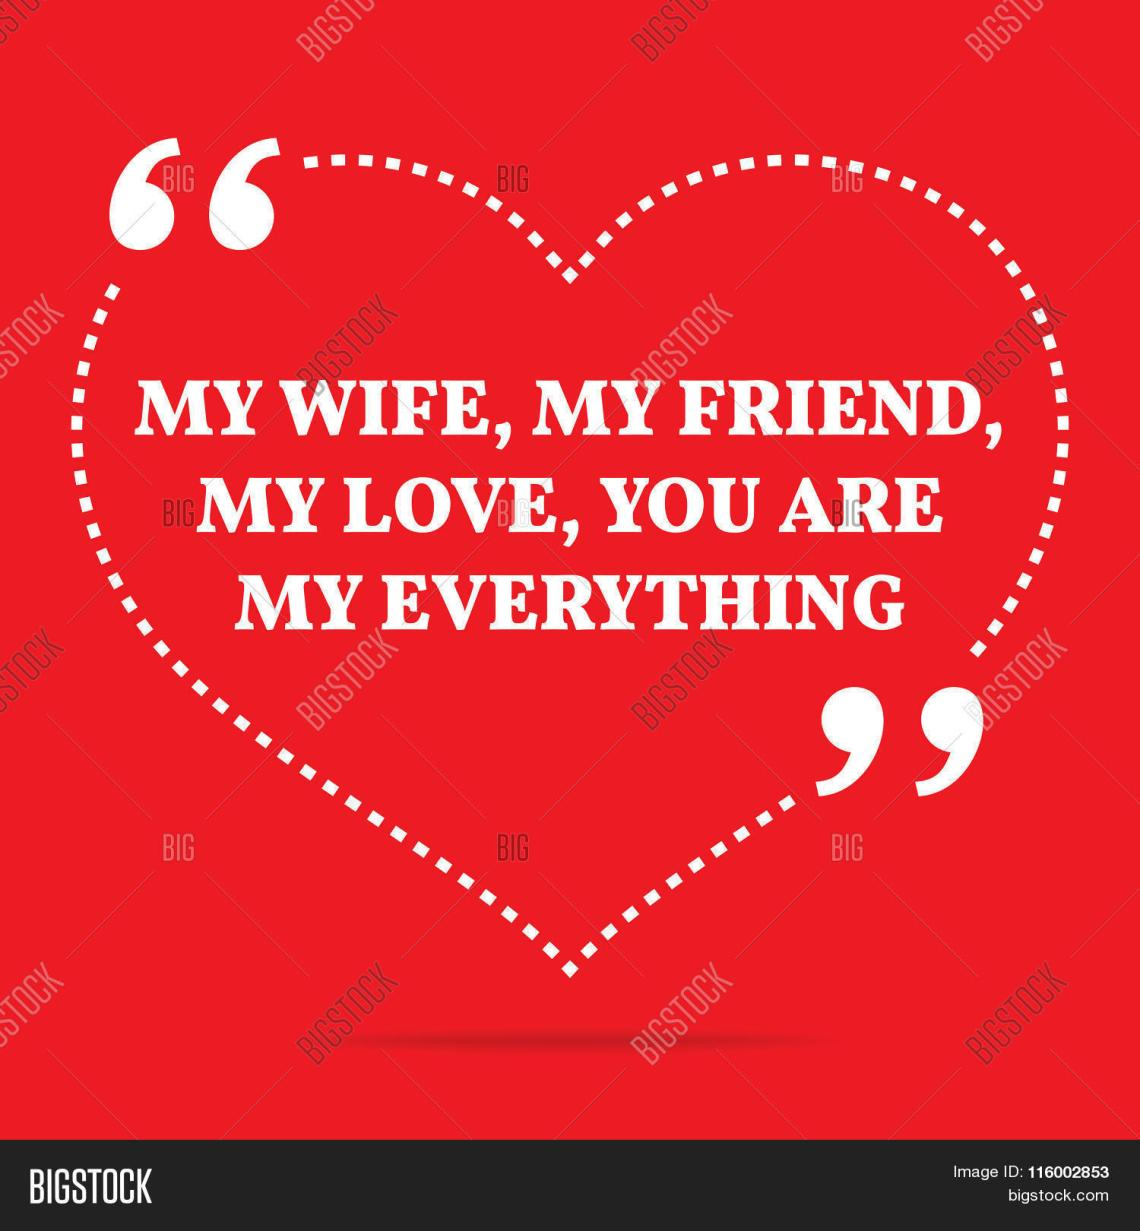 Download Inspirational Love Quote. My Wife Vector & Photo | Bigstock